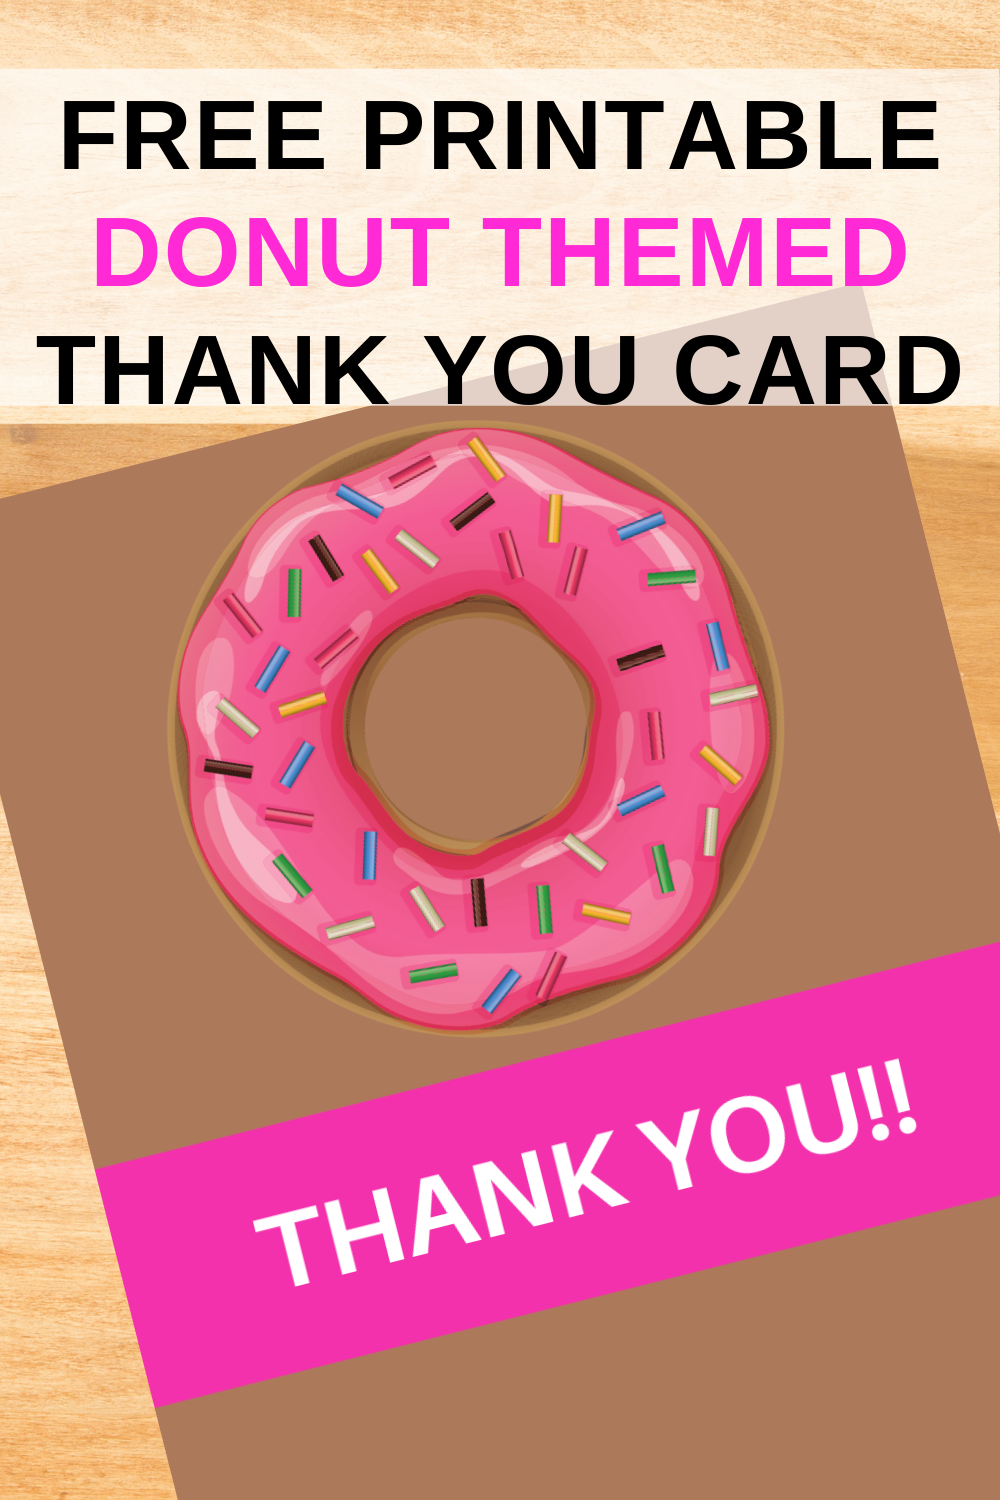 free download: donut themed thank you card for kids